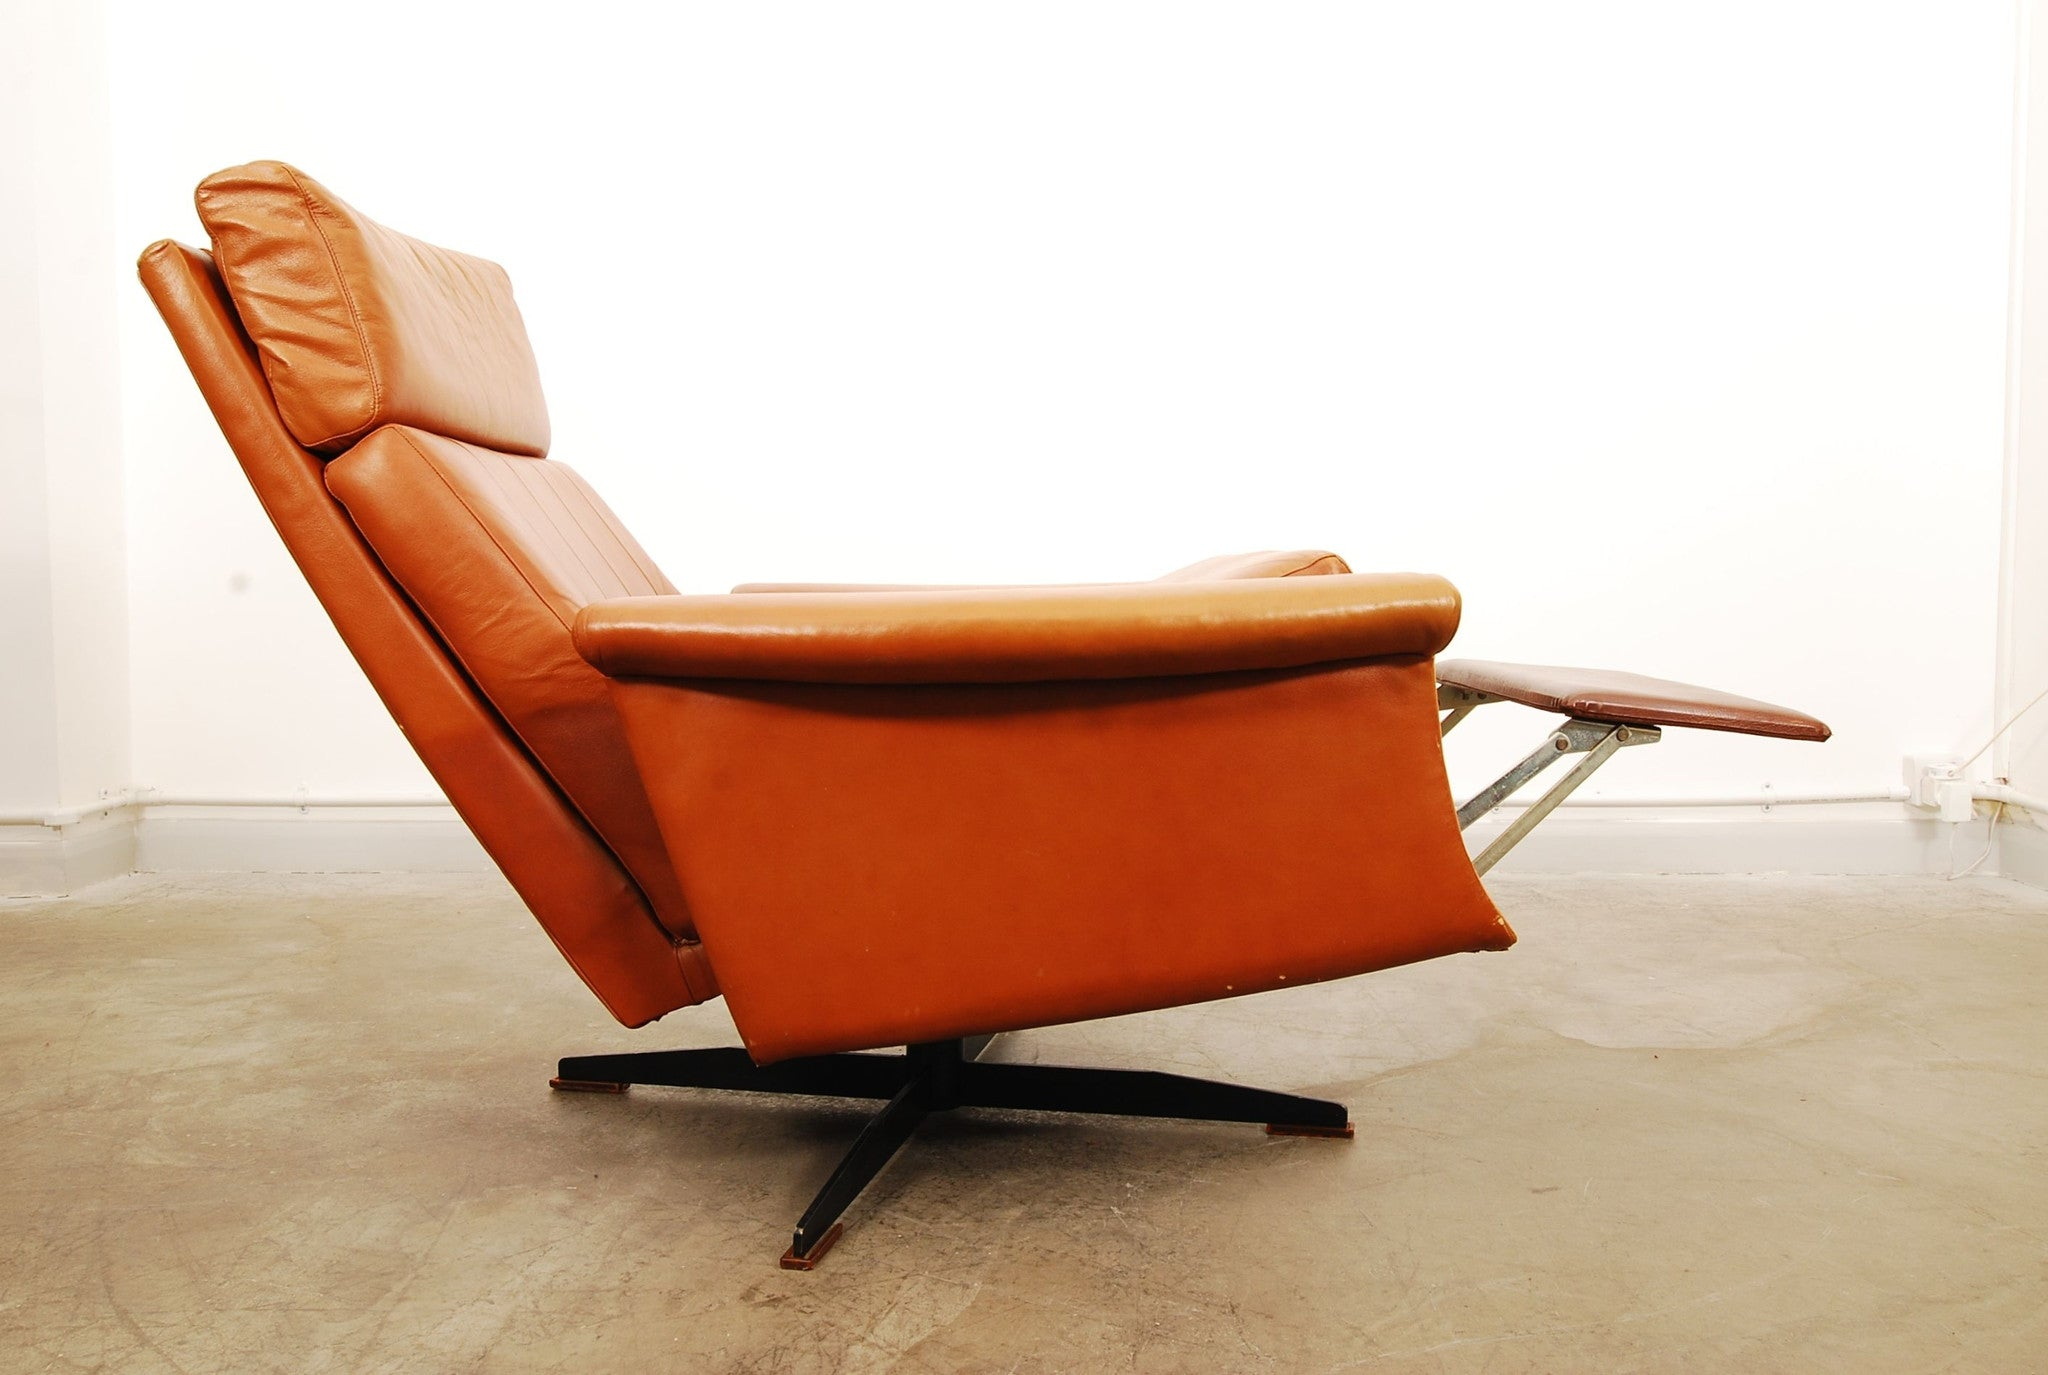 Reclining leather lounger